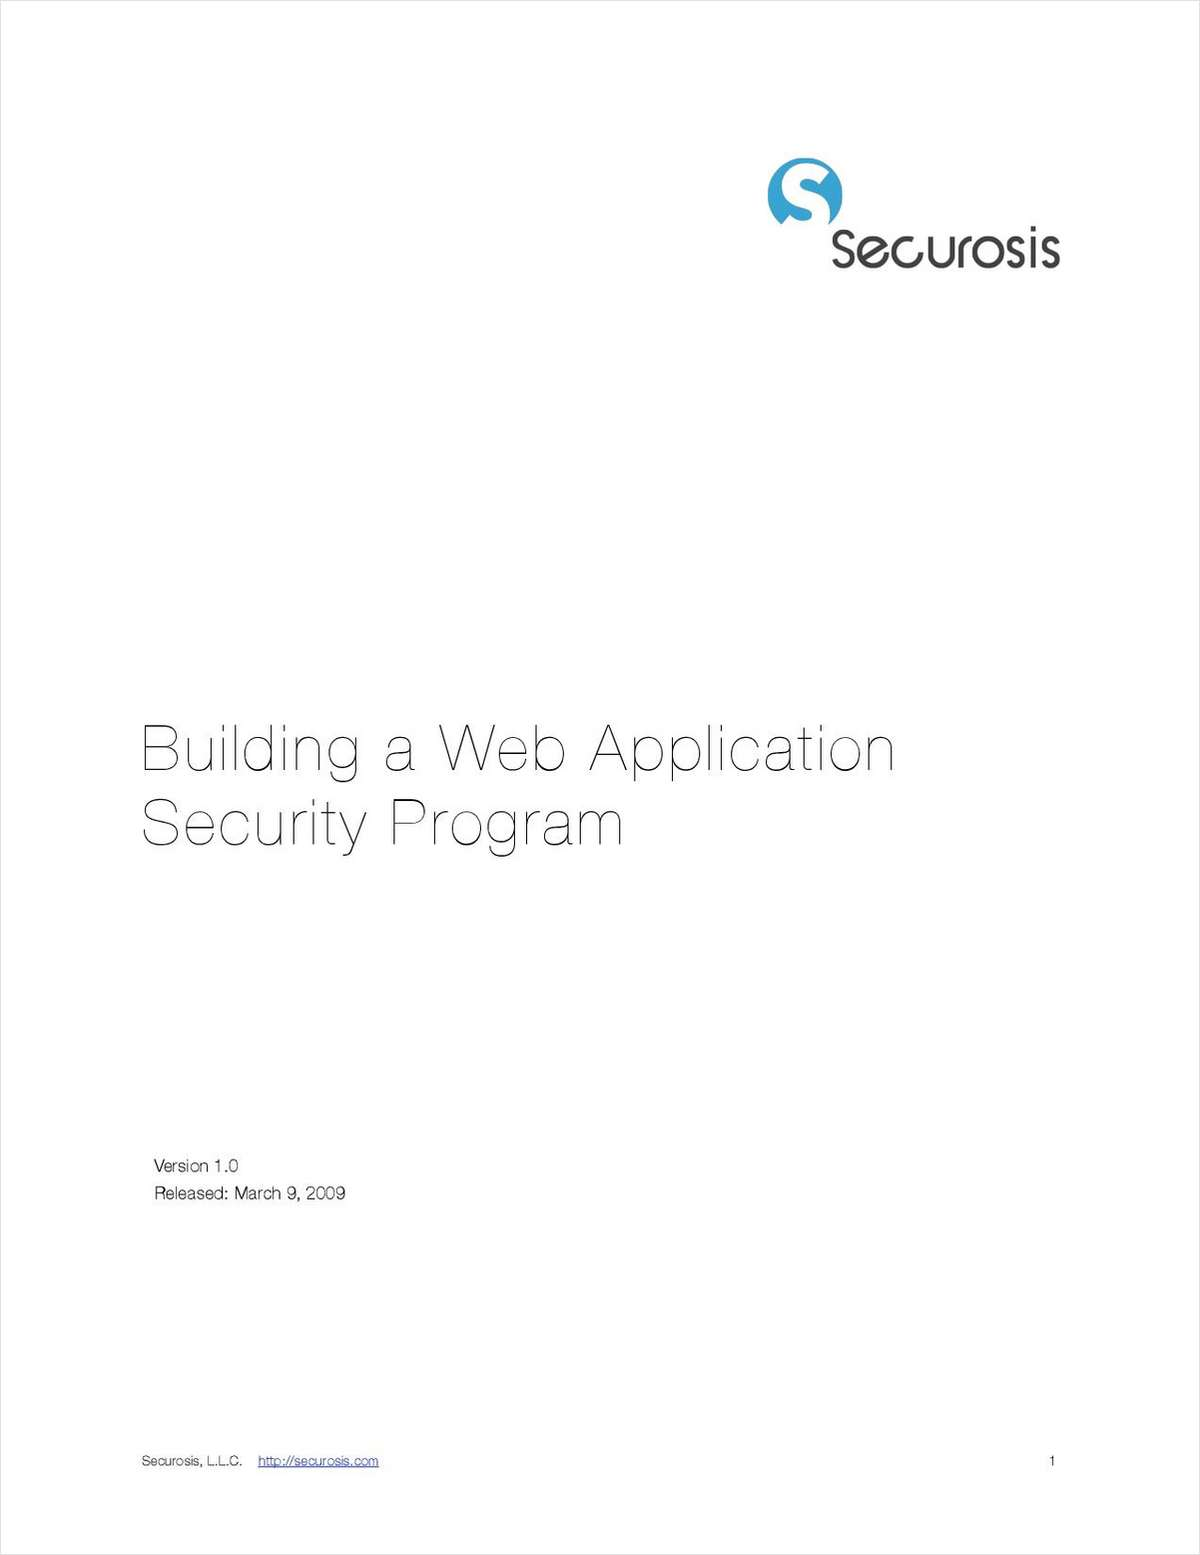 Building a Web Application Security Program